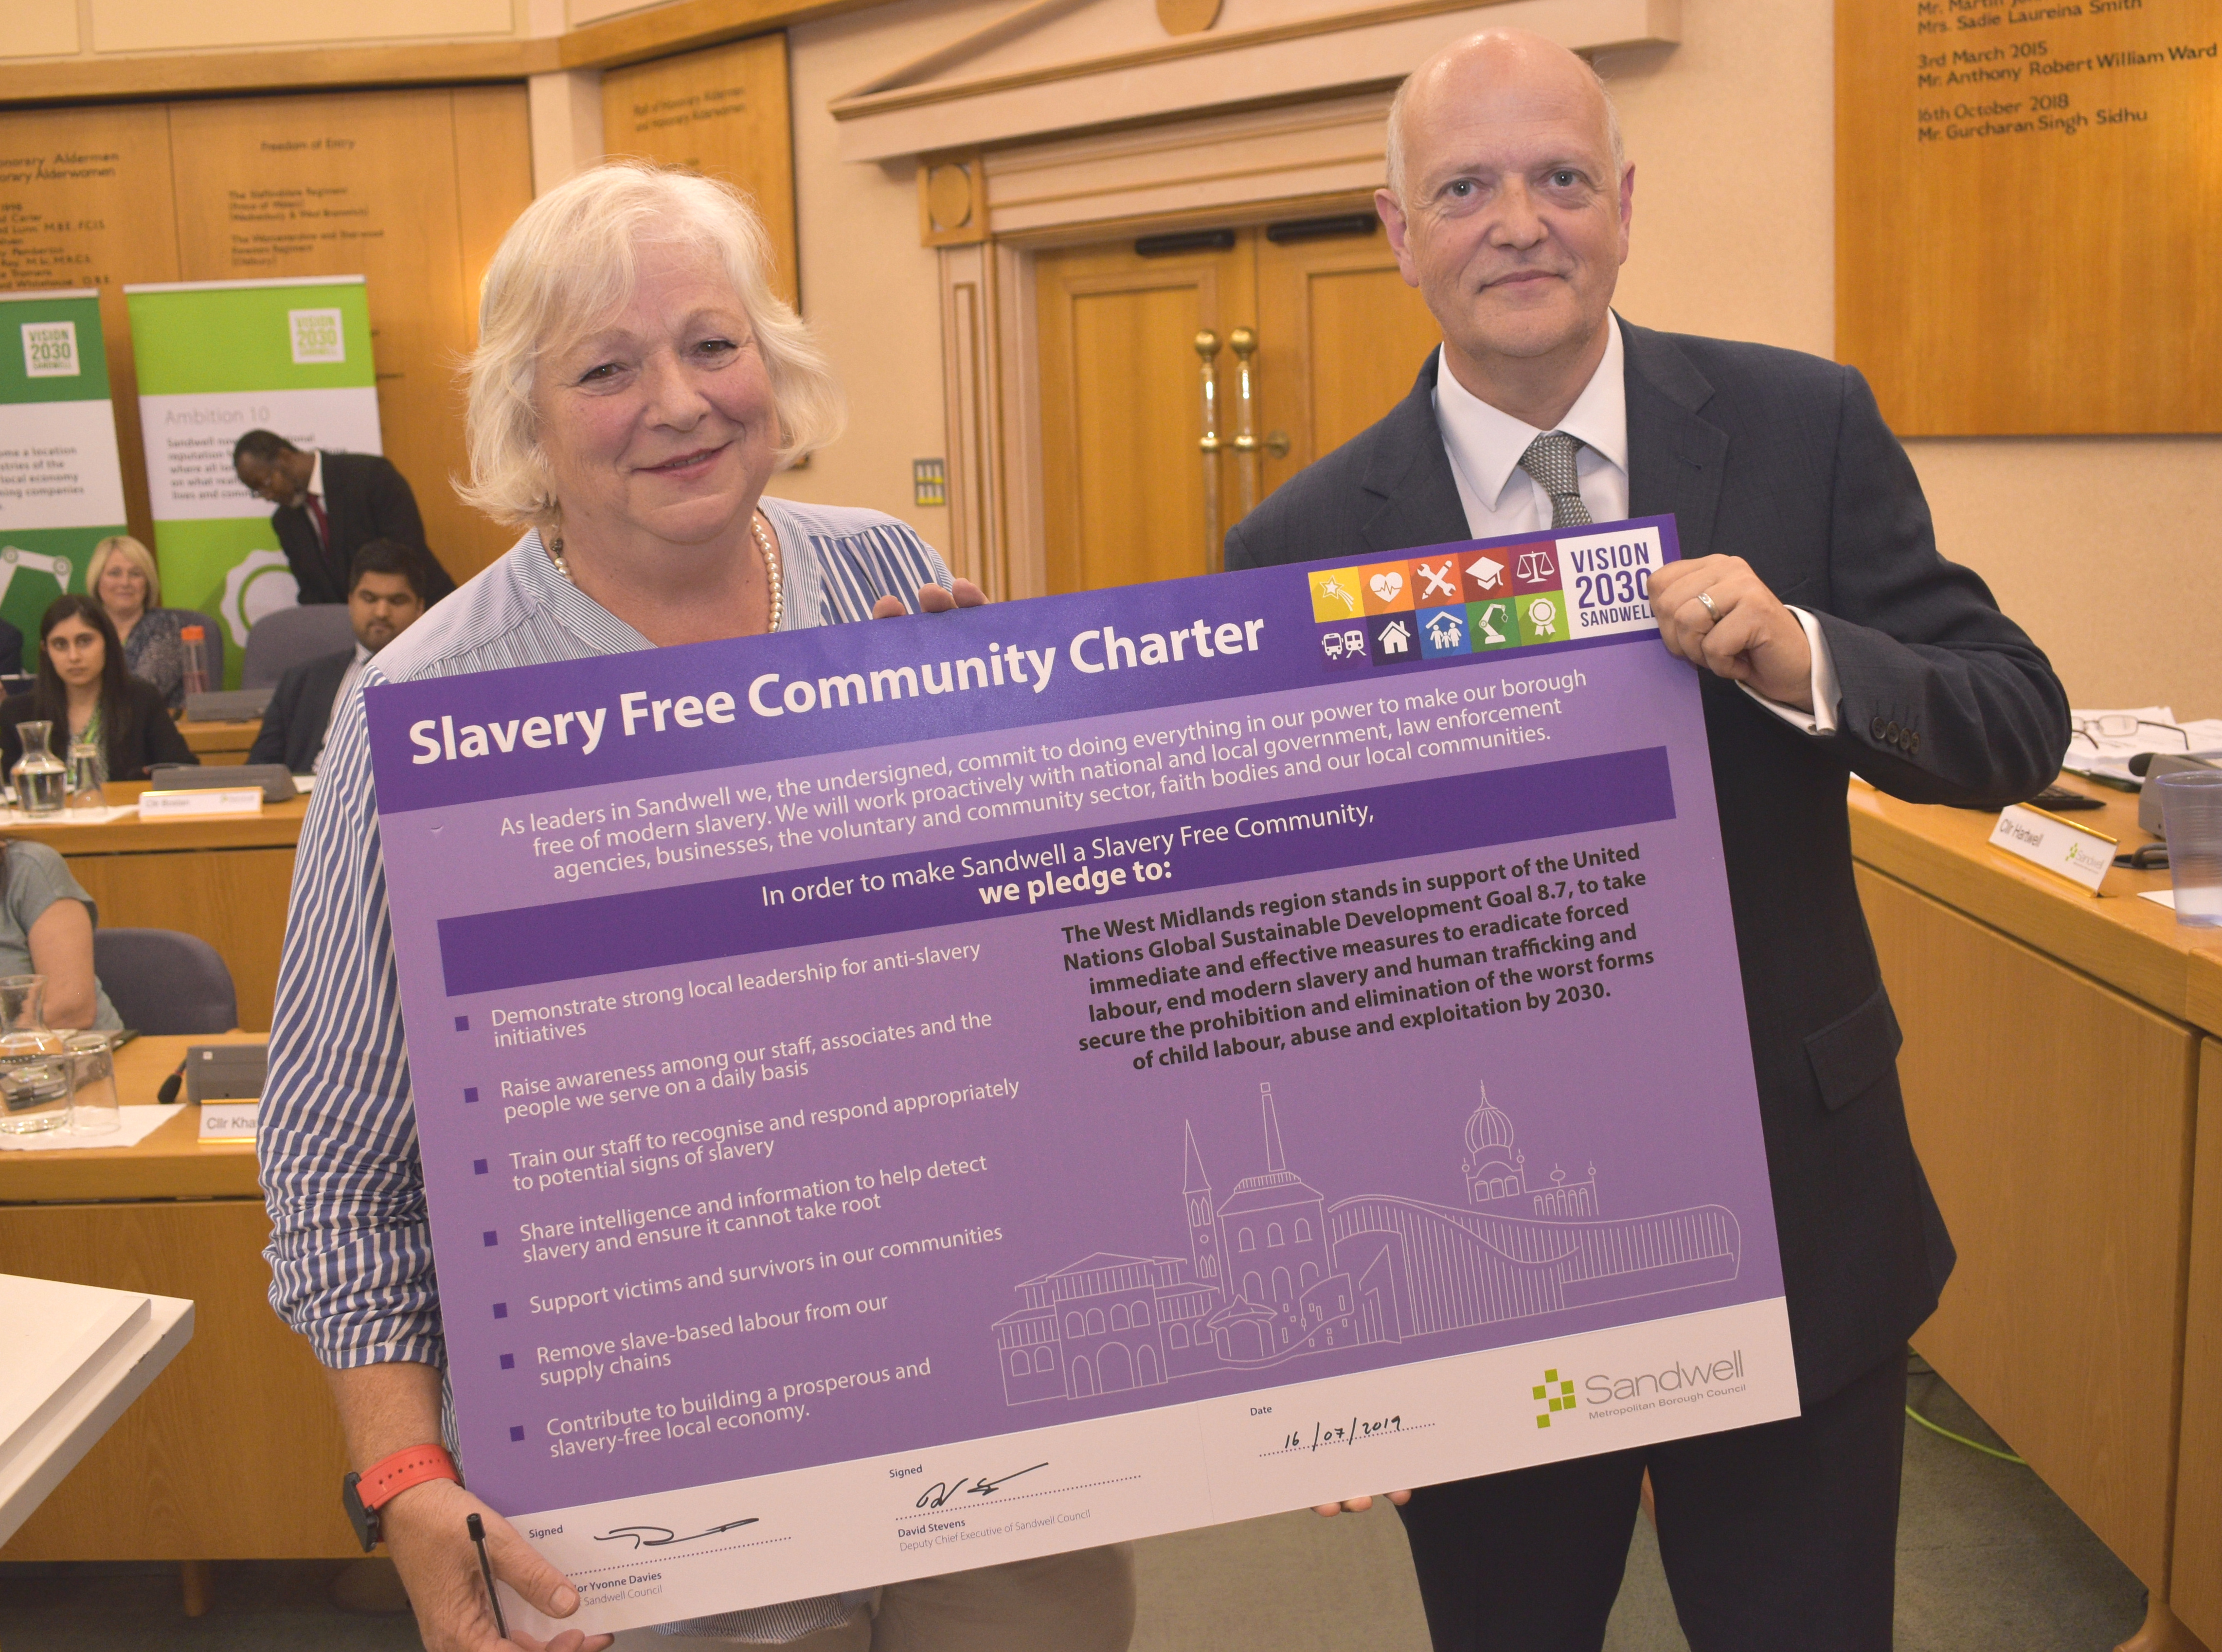 Charter signed to make Sandwell slavery free Image